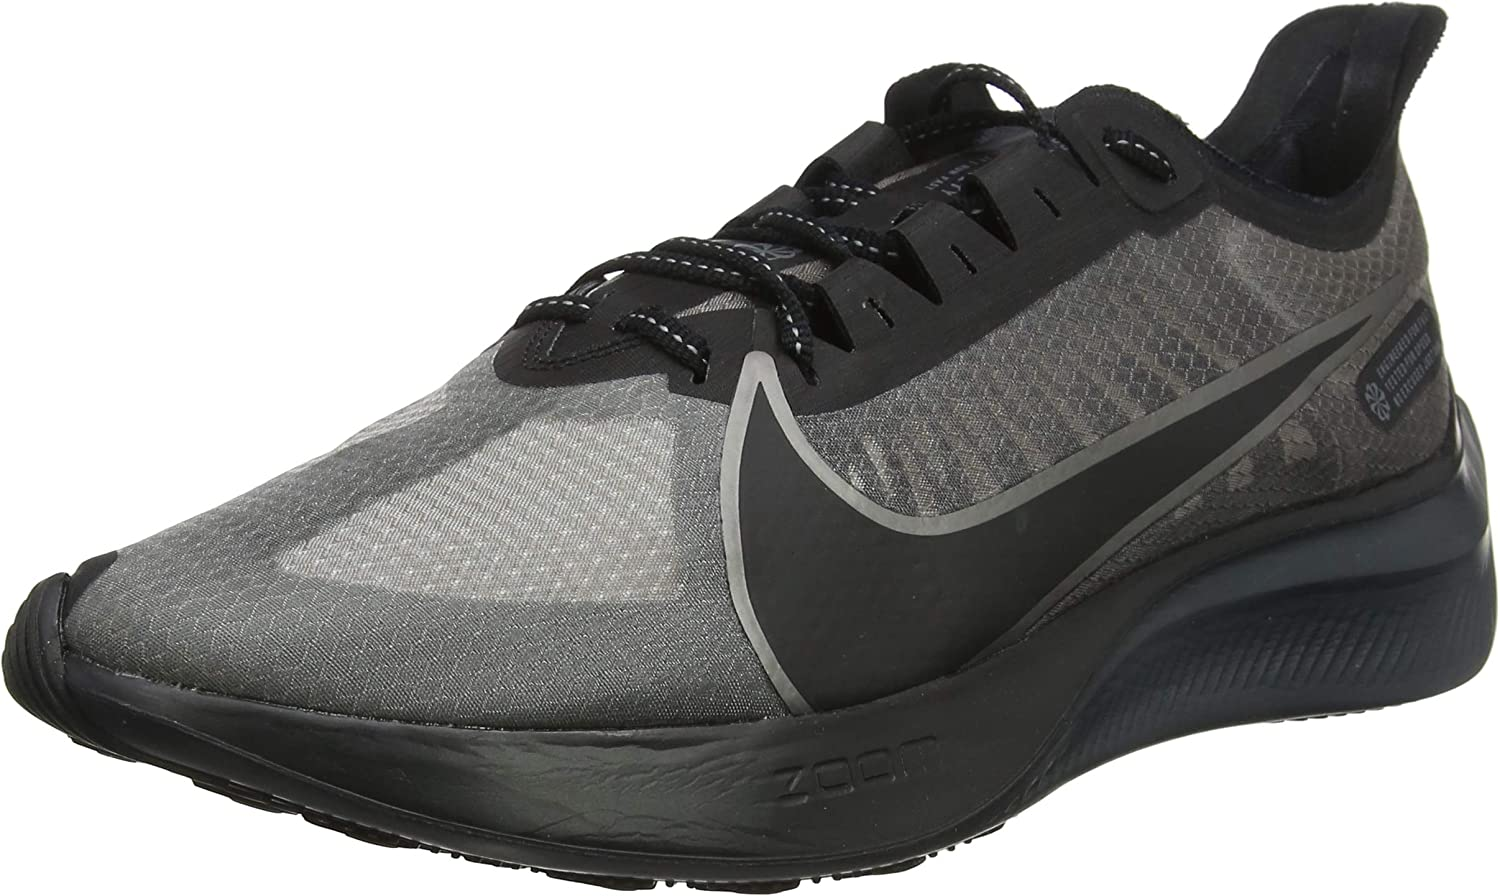 Nike Mens Zoom Gravity Trainers Speed Running Shoes